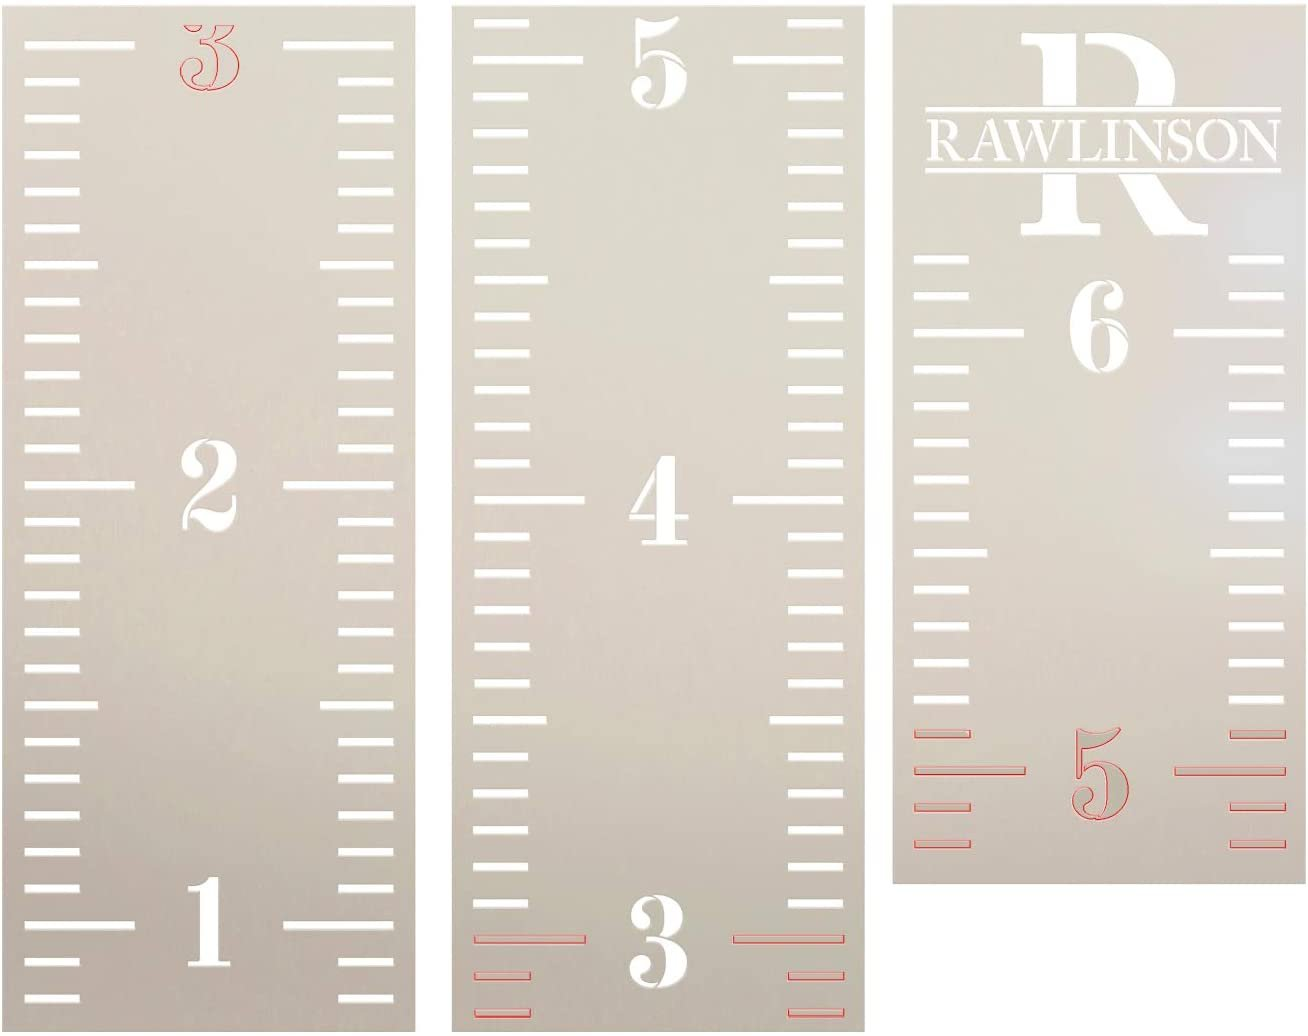 Personalized Monogram Growth Chart Ruler 3-Part Stencil by StudioR12   DIY Bedroom & Nursery Wall Decor   Craft & Paint Tall Wood Signs   Size (6 ft)